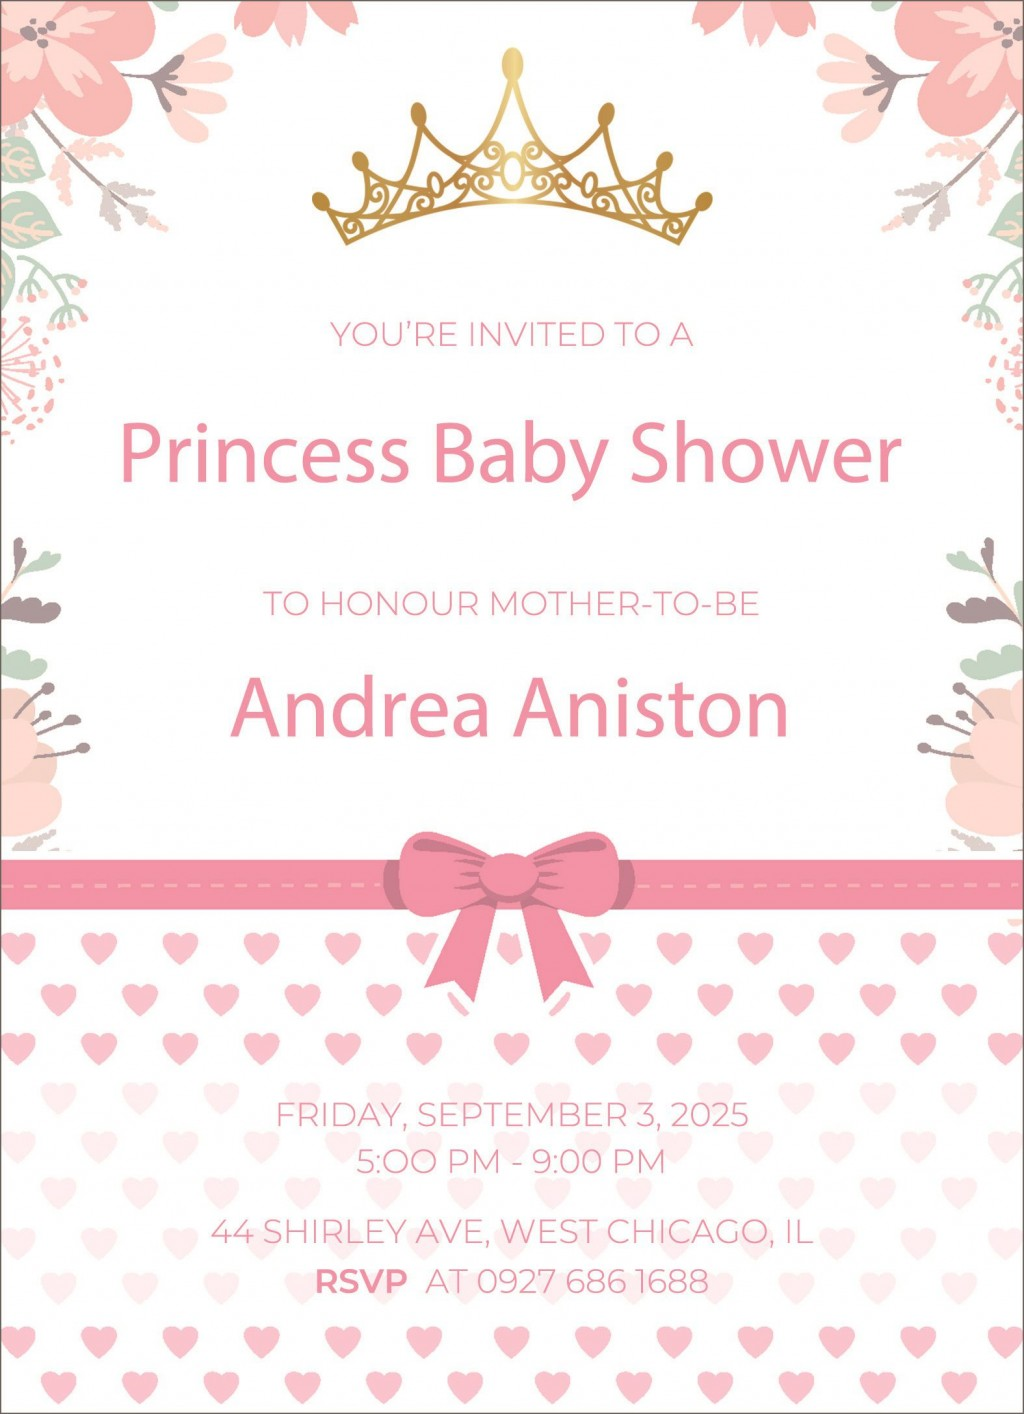 005 Fearsome Baby Shower Announcement Template High Resolution  Templates Invitation India Indian Free With PhotoLarge